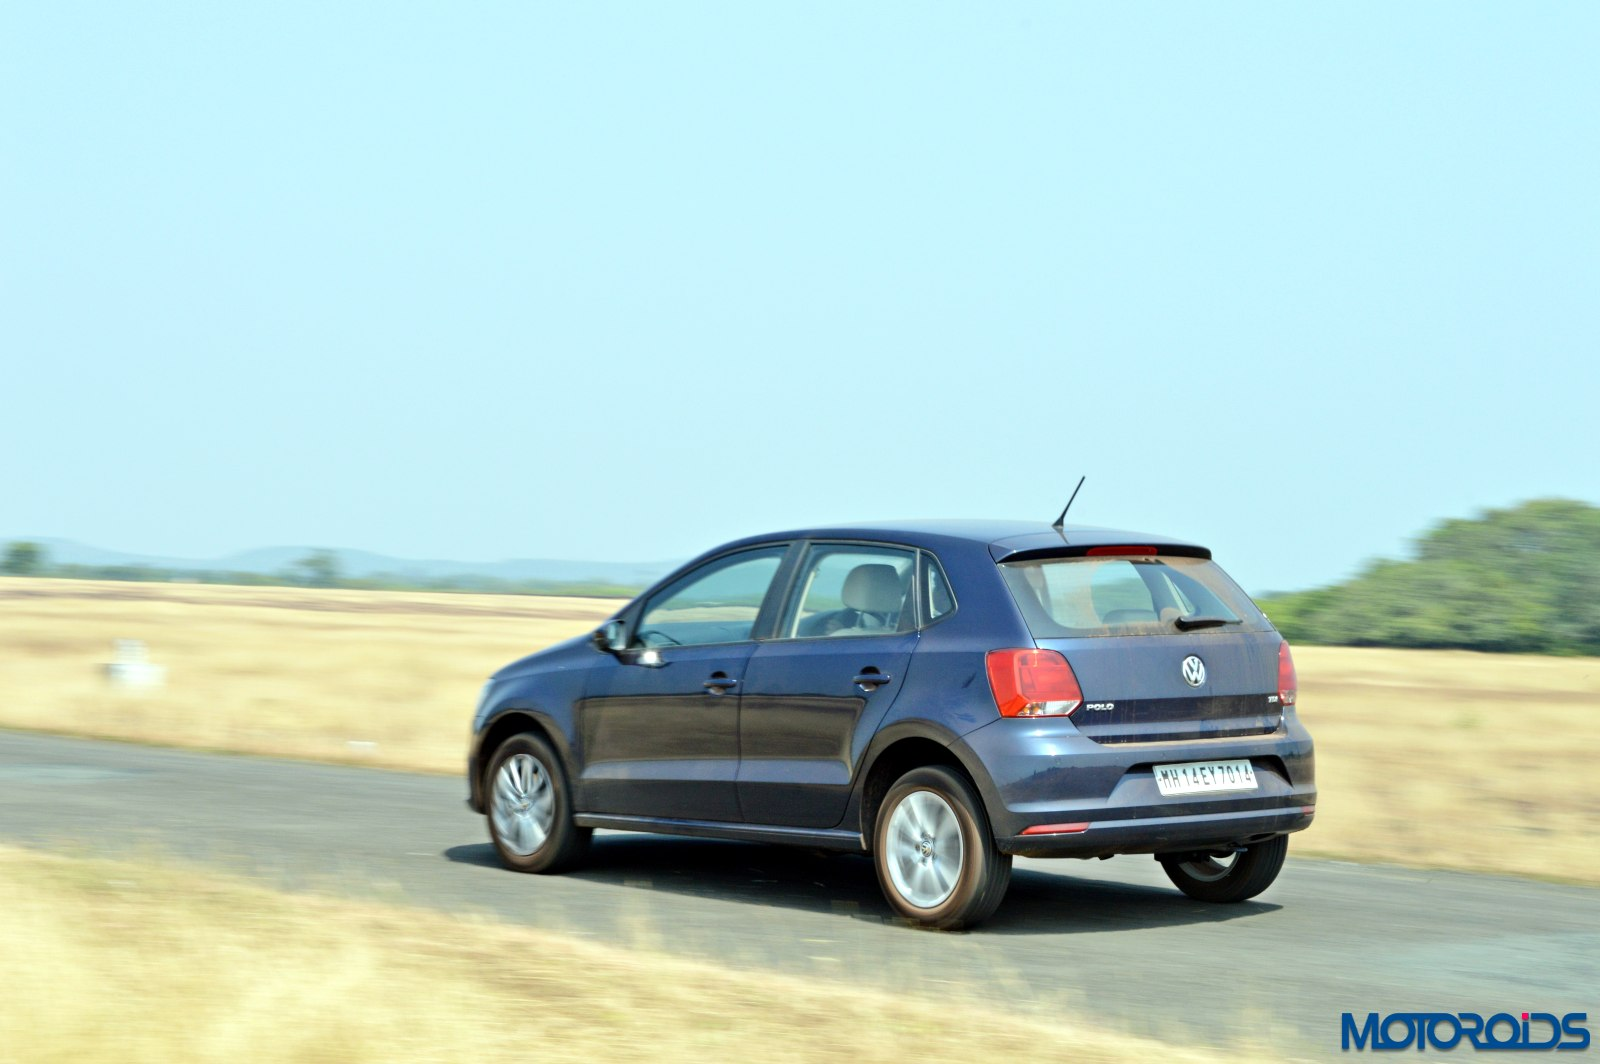 Reviews me and my volkswagen cooking recipes owners features - 2016 Volkswagen Polo 1 5 Tdi Highline Travelogue Review Stitching The Coastline Motoroids